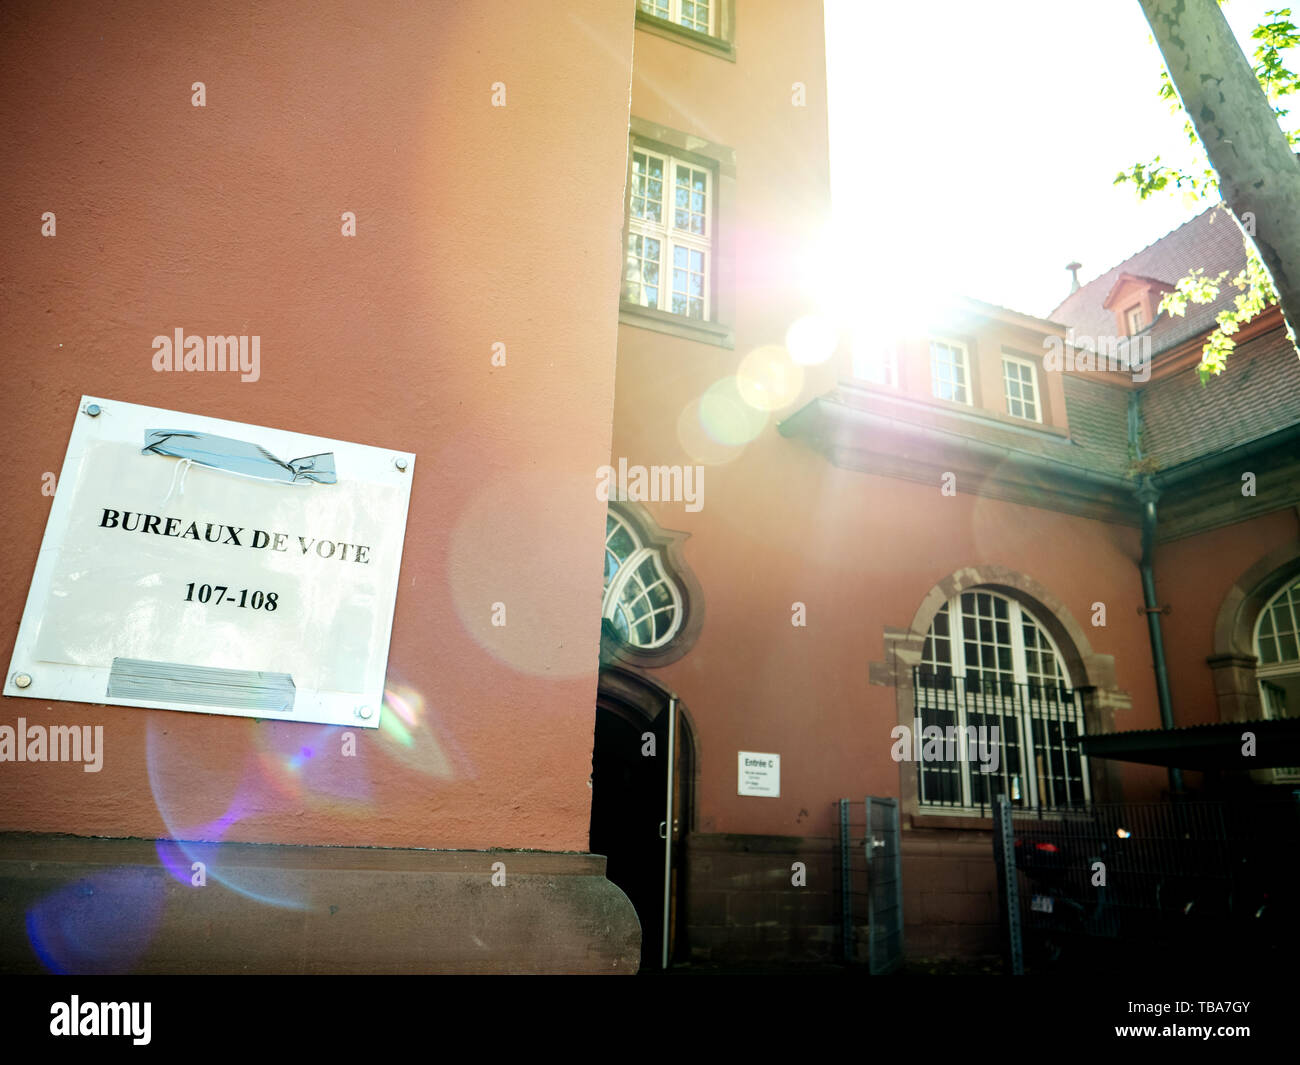 Strasbourg, France - May 26, 2019: entrance to polling station bureaux de vote in France on the 2019 European Parliament election day - Stock Image